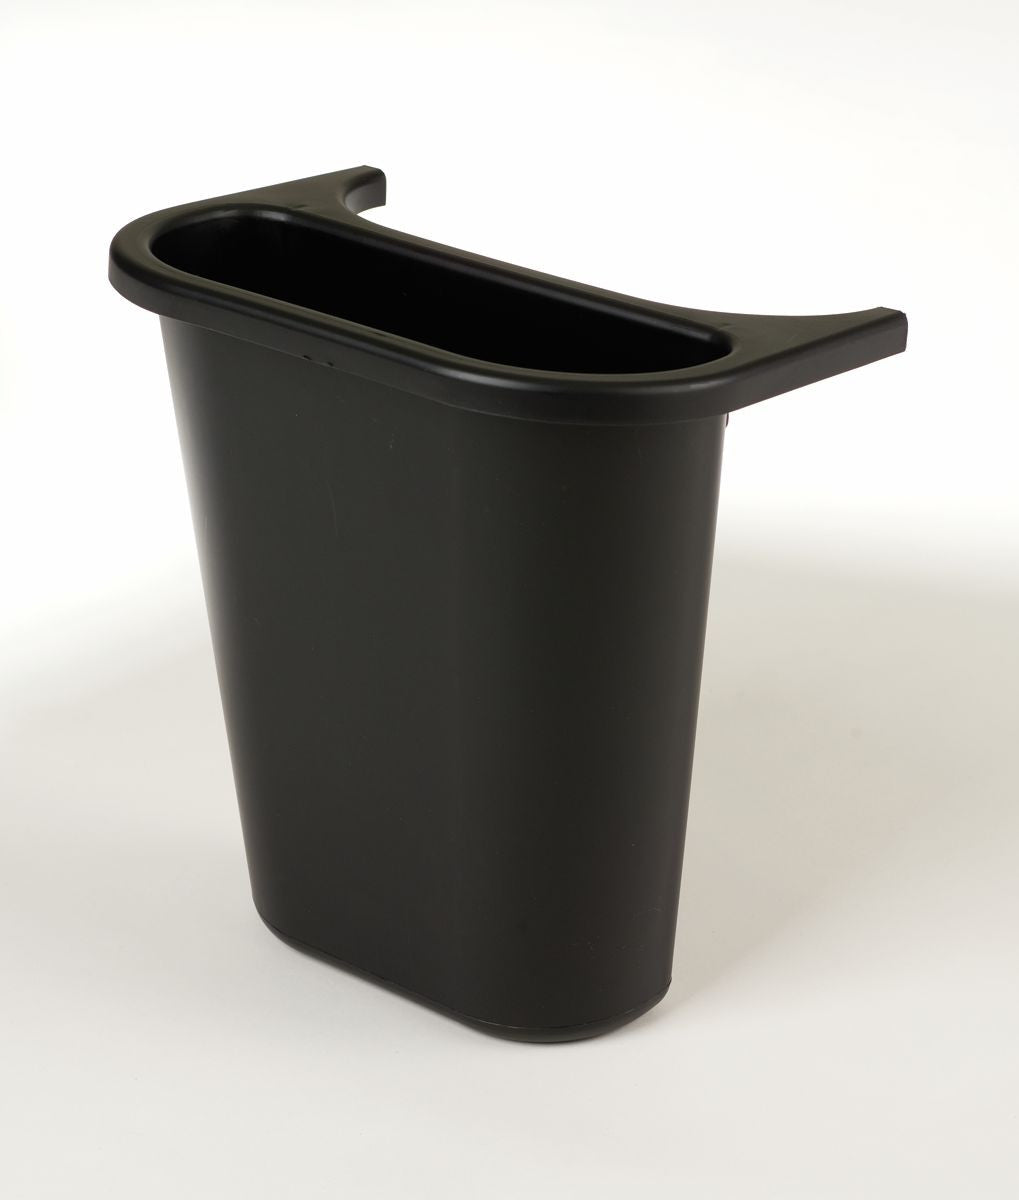 "SIDE BIN RECYCLING CENTER 10.6x7.3x11.7"" BLACK"